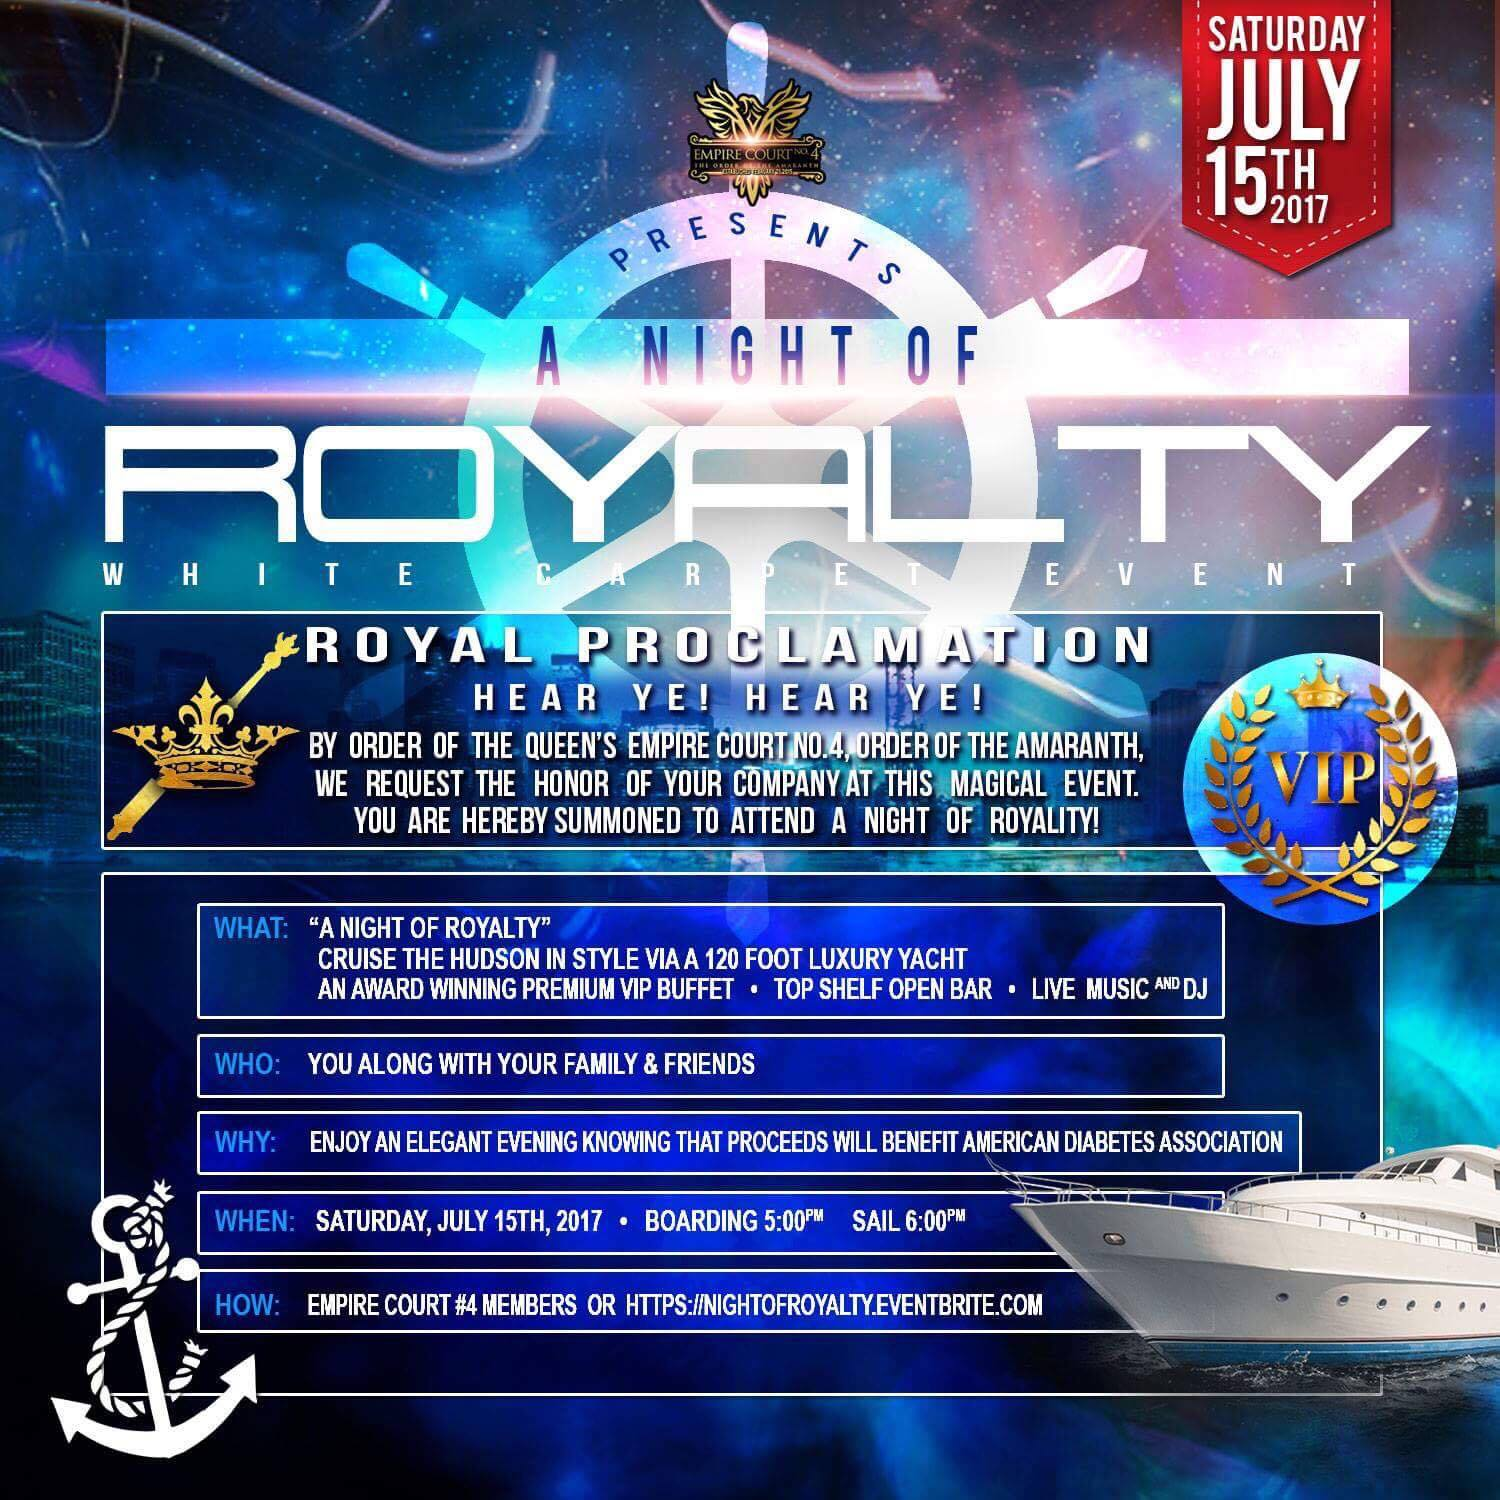 Invitation to a Night of Royalty